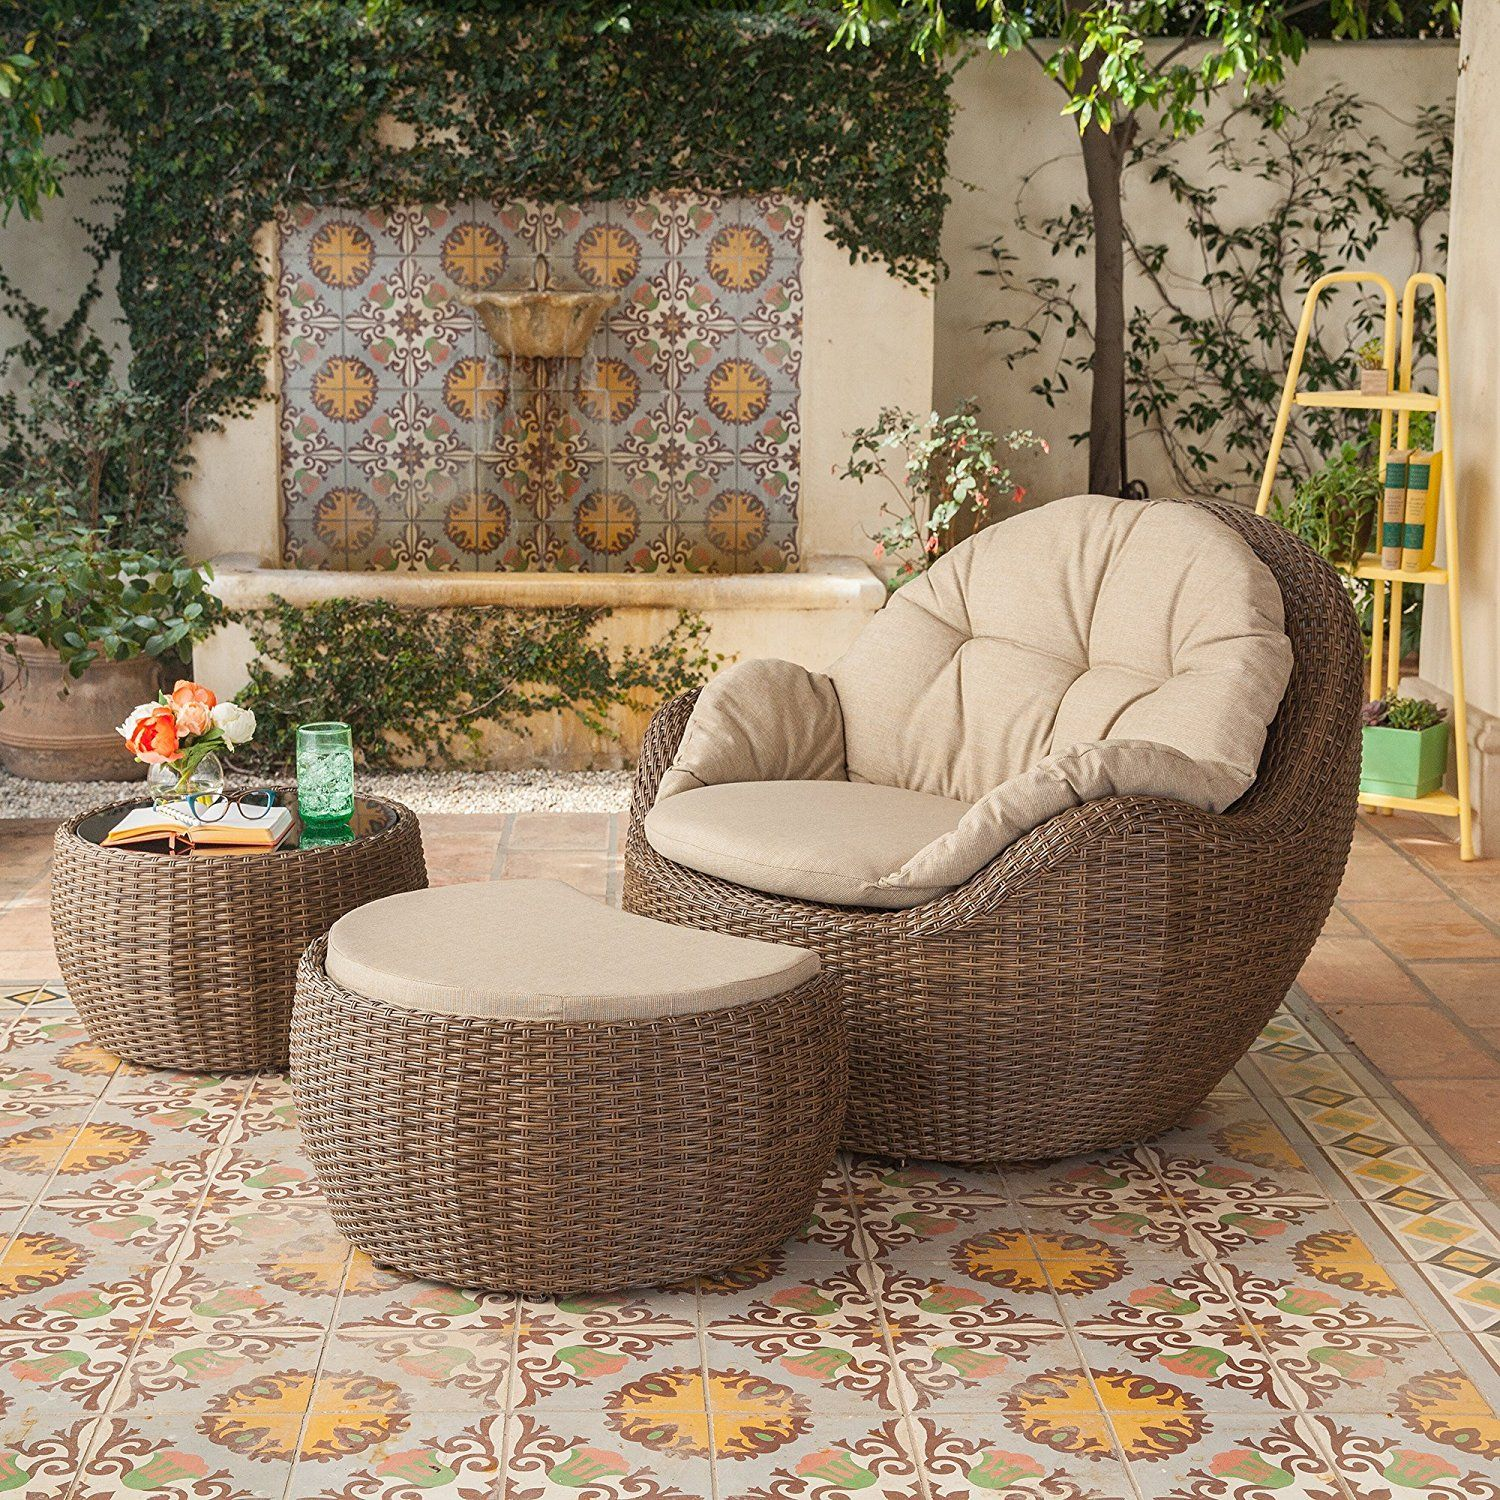 3 piece small space outdoor garden furniture set patio wicker